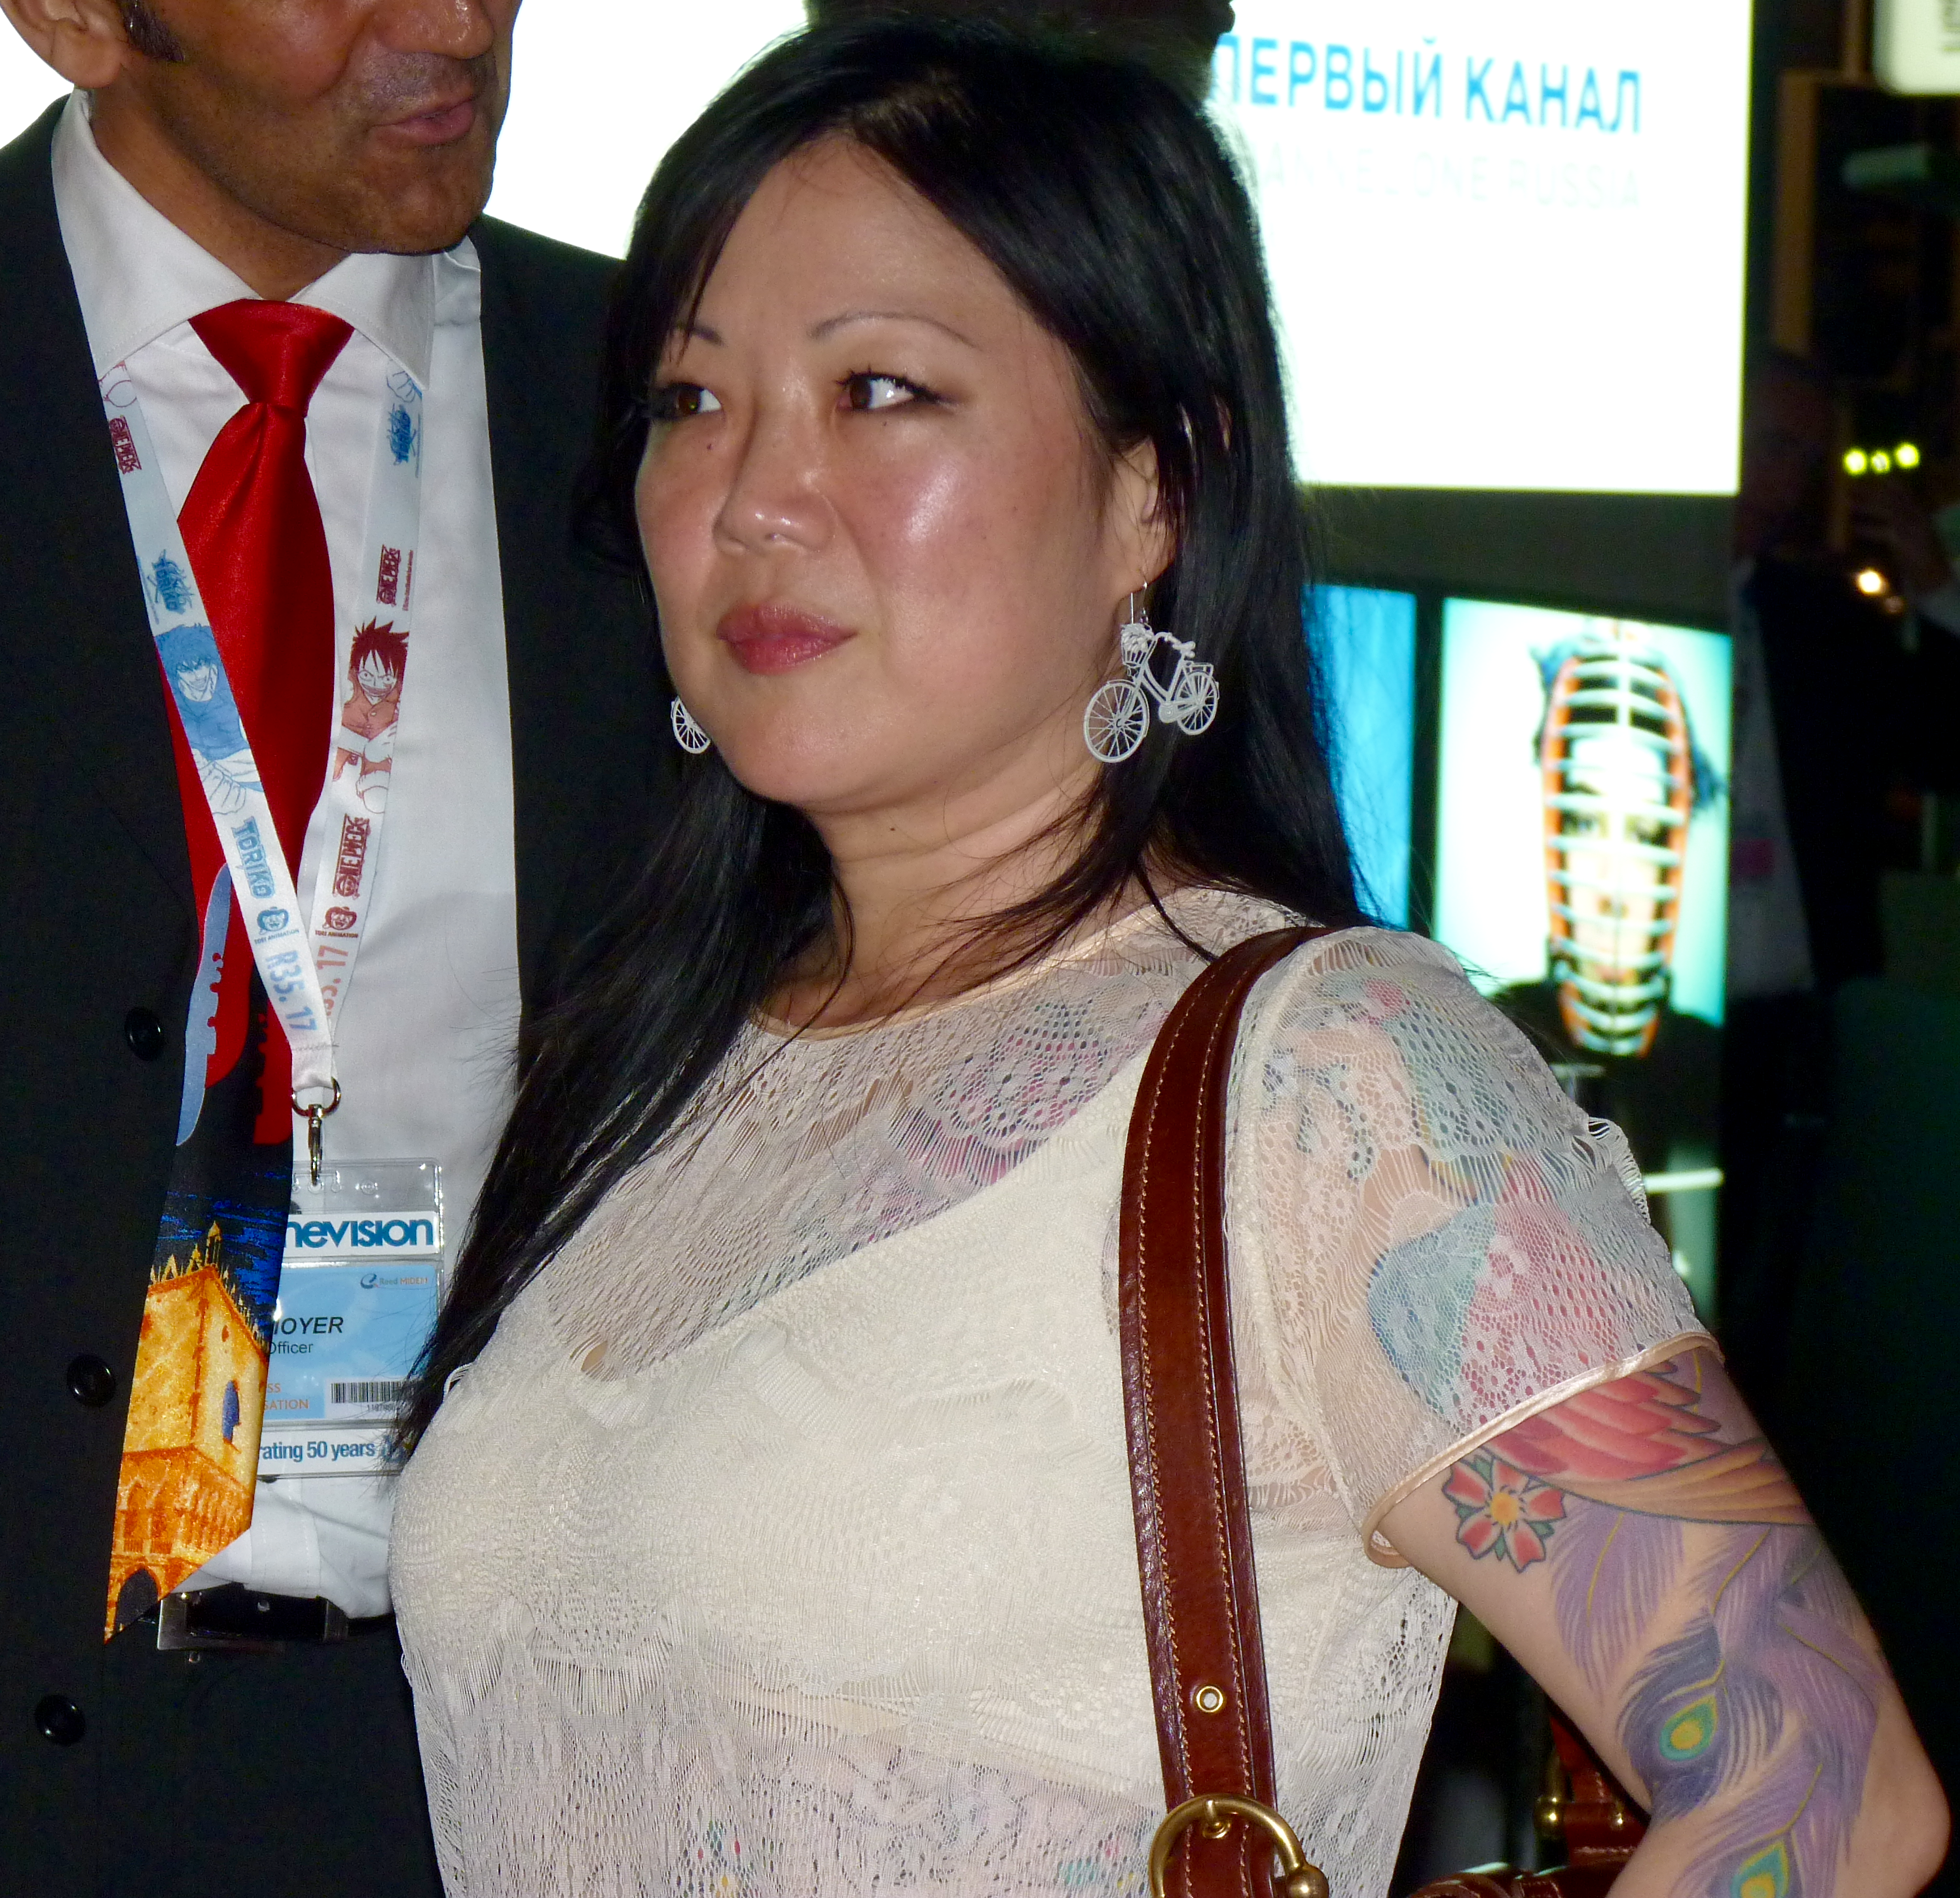 The 49-year old daughter of father (?) and mother(?) Margaret Cho in 2018 photo. Margaret Cho earned a  million dollar salary - leaving the net worth at 3 million in 2018